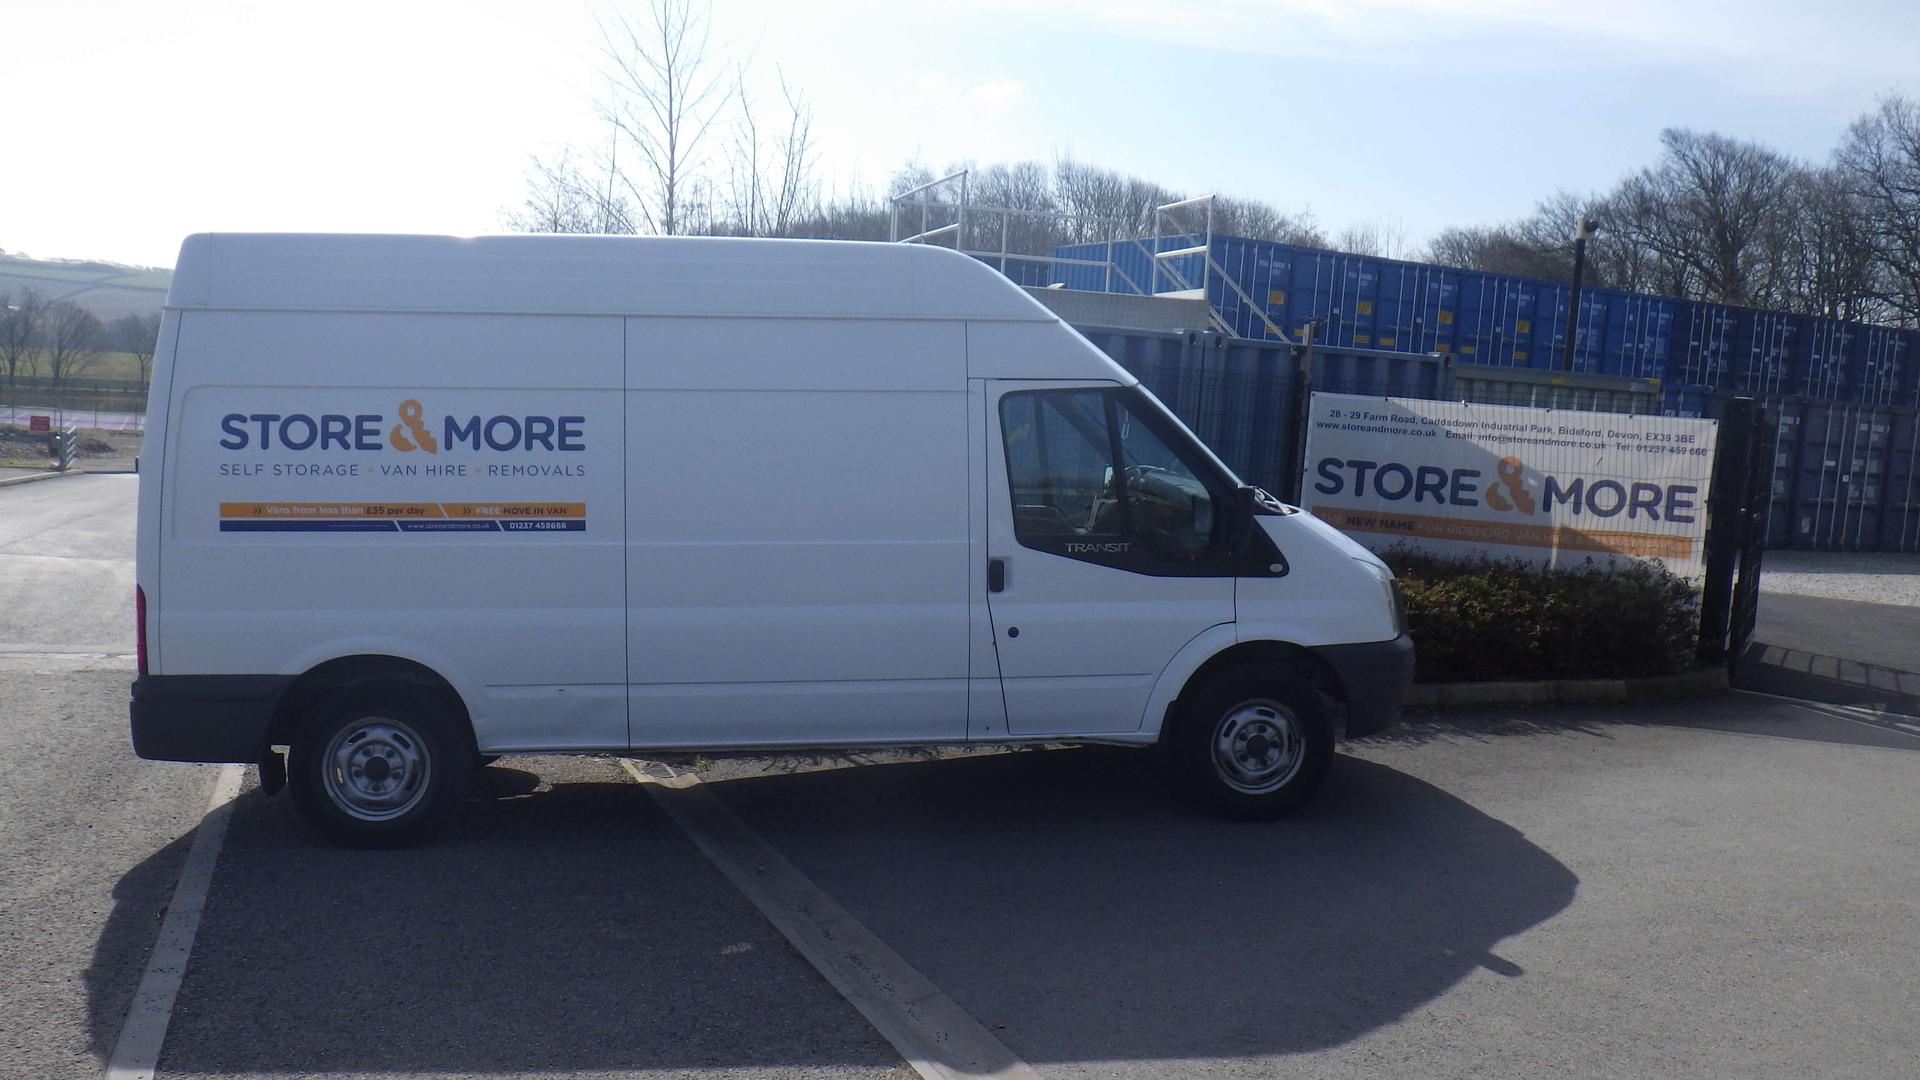 A Store & More van for hire